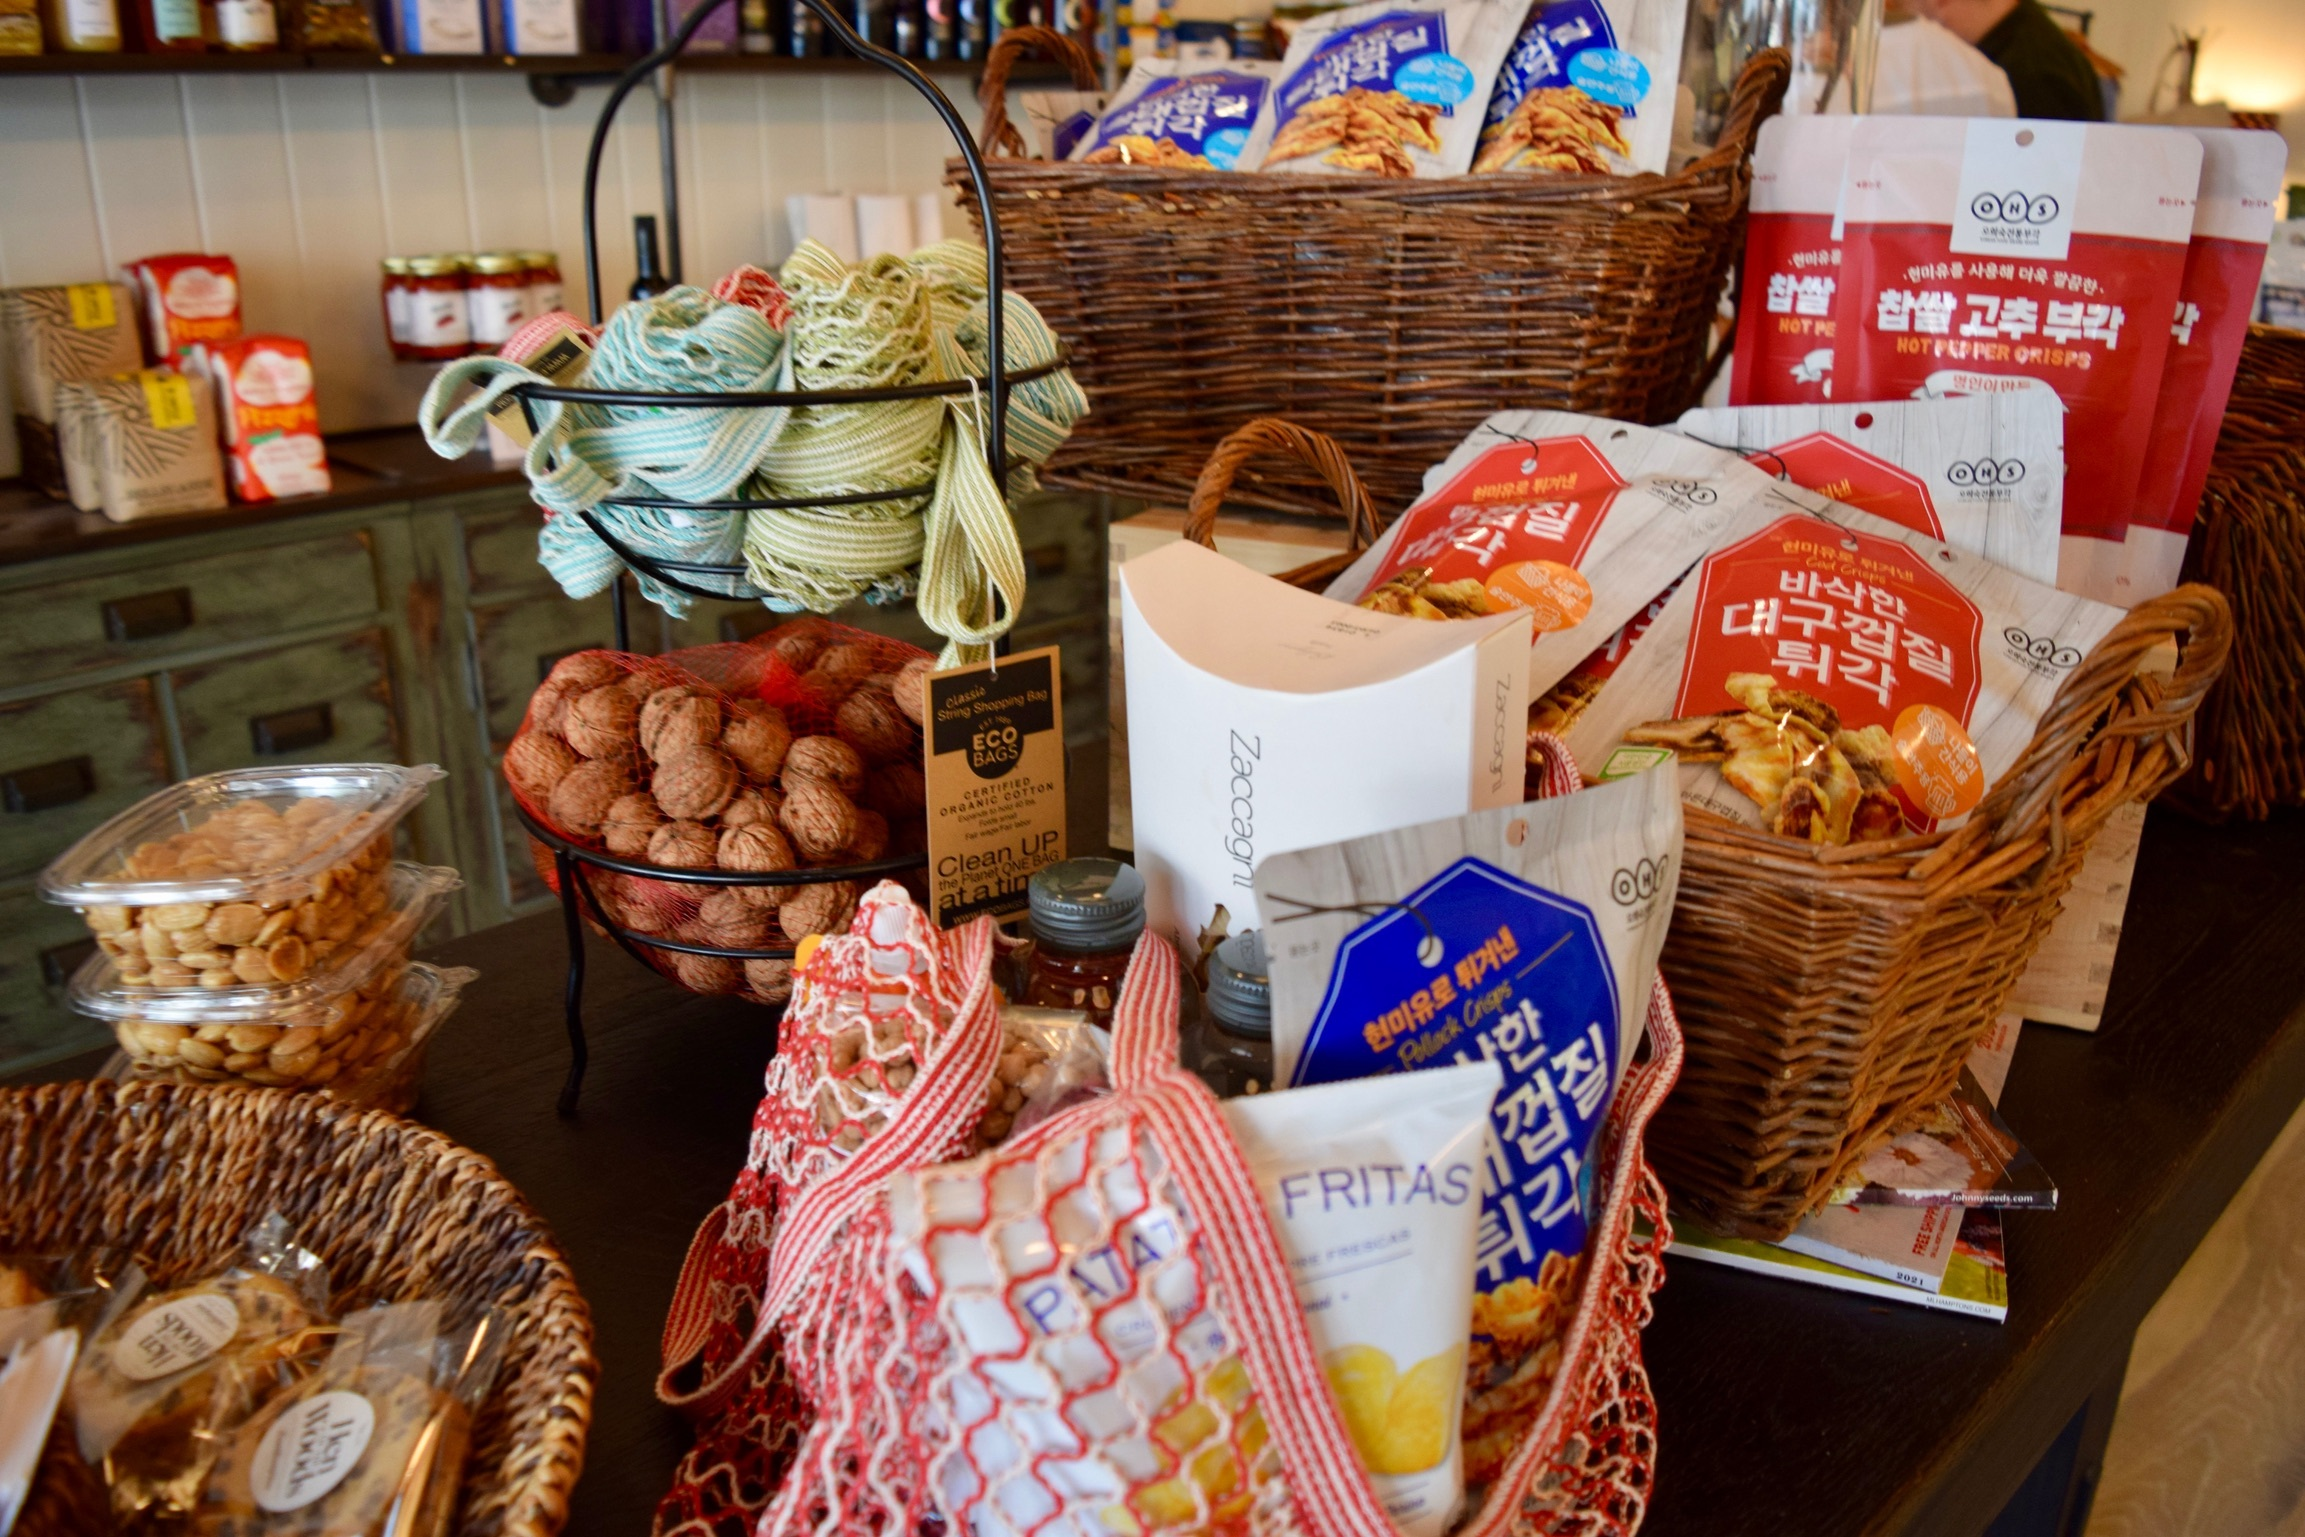 Hen of the Woods market specializes in unique pantry items.